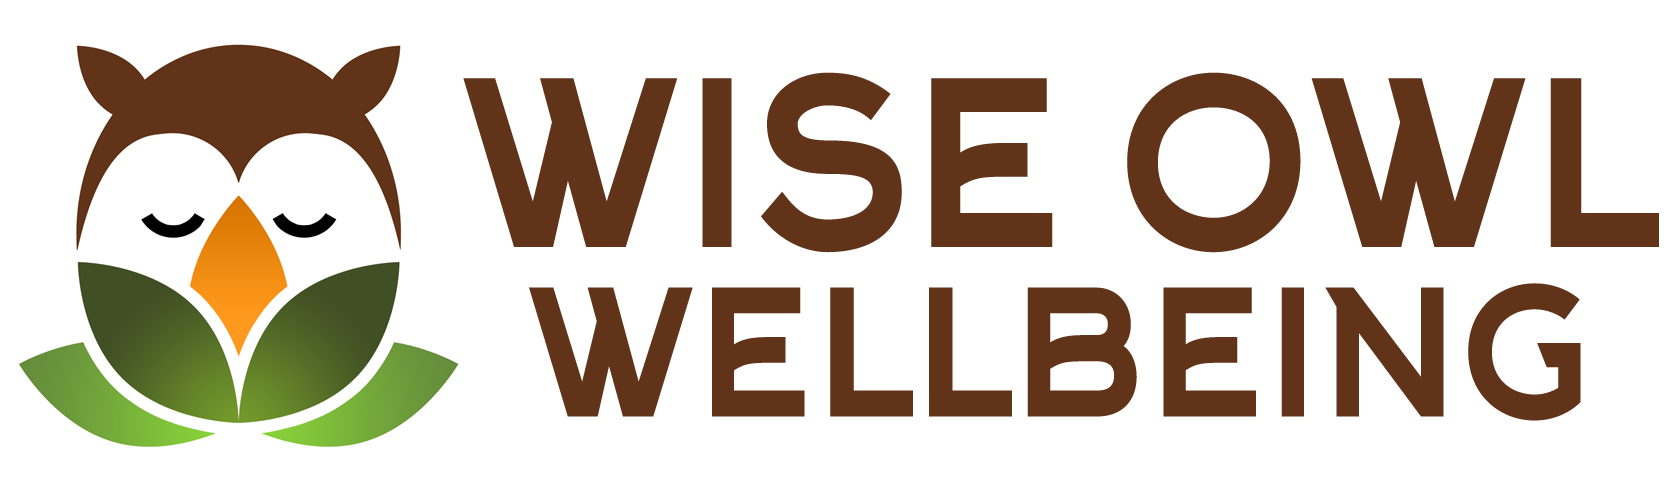 Wise Owl Wellbeing